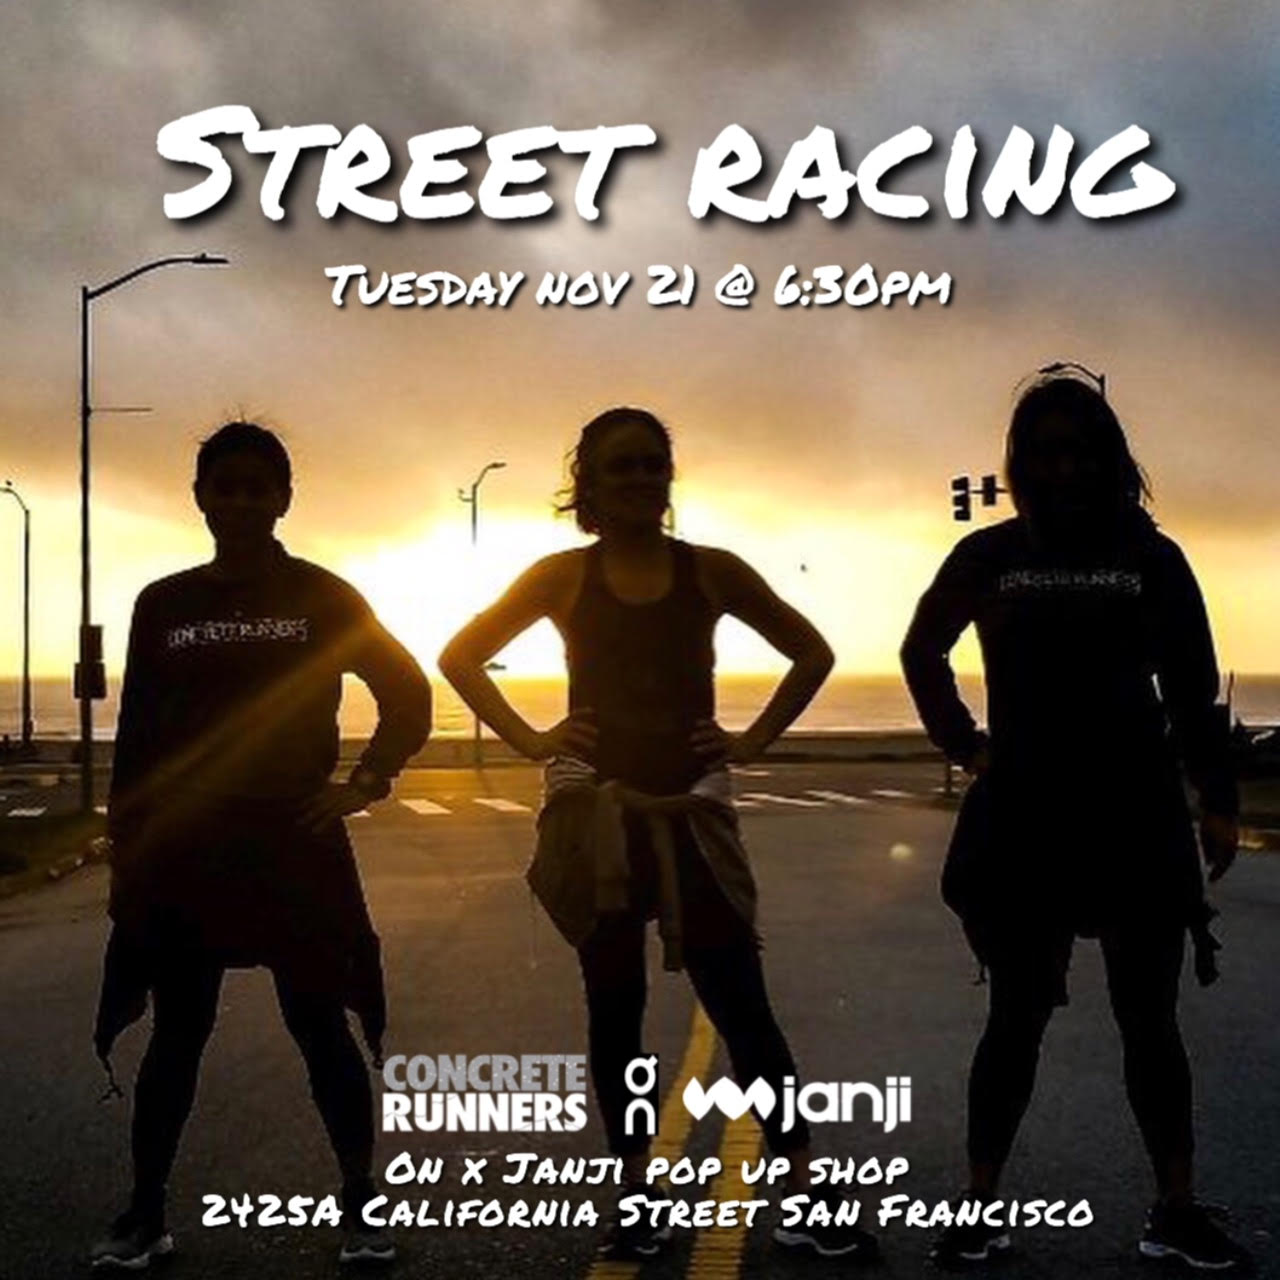 Join us for our first street racing event with ON Running. Turn ON your sprints and race head-to-head with someone else in this tournament style event.🏻♀️🏻♂️  Meet: On Running x Janji Pop-Up Shop  Address: 2425A California St San Francisco  Time: 6:30pm SHARP!  Distance: Run 3.5 miles to Balmy Alley - 50 Balmy St, RACE head-to-head and run 3.5 miles back Pop-Up Shop.  Beer will be provided as post run refreshments!